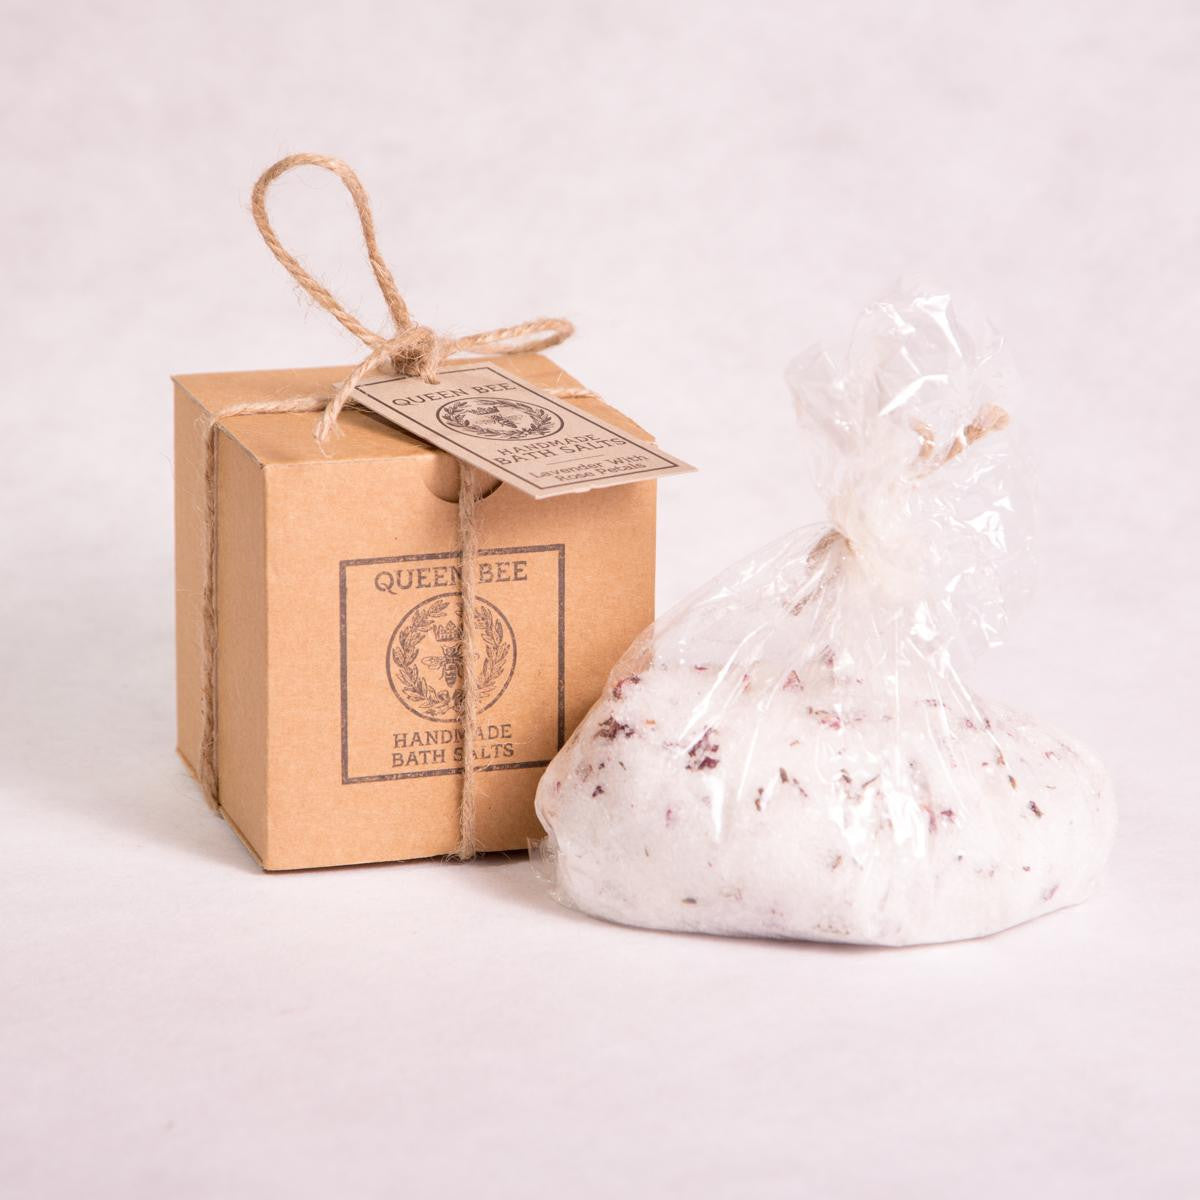 Lavender with Organic Rose Petals Bath Salts - 500g - Bath Salts - Throw Some Seeds - Australian gardening gifts and eco products online!